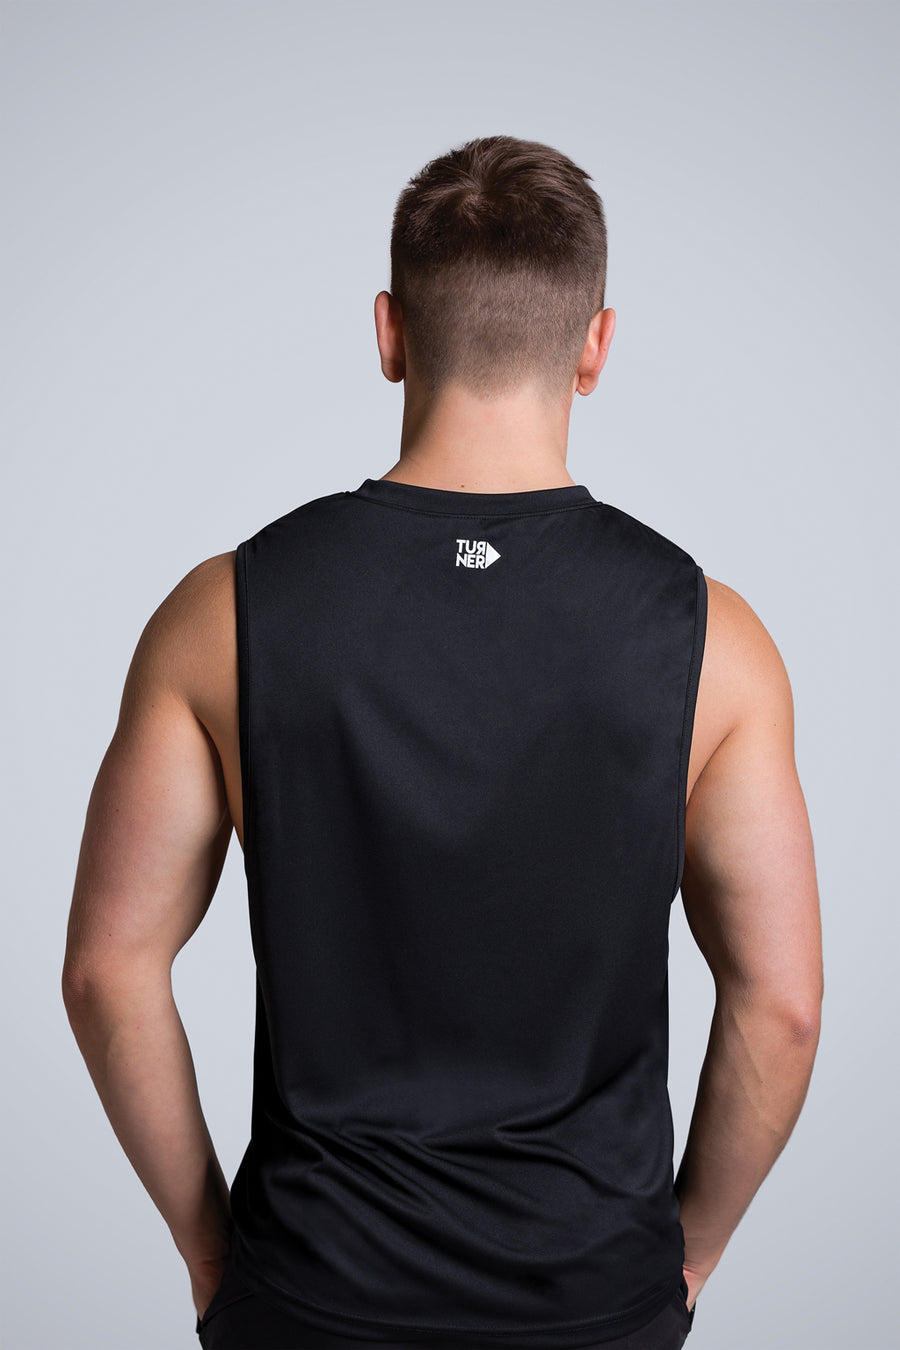 Men's FreedomFit Black Basic Tank